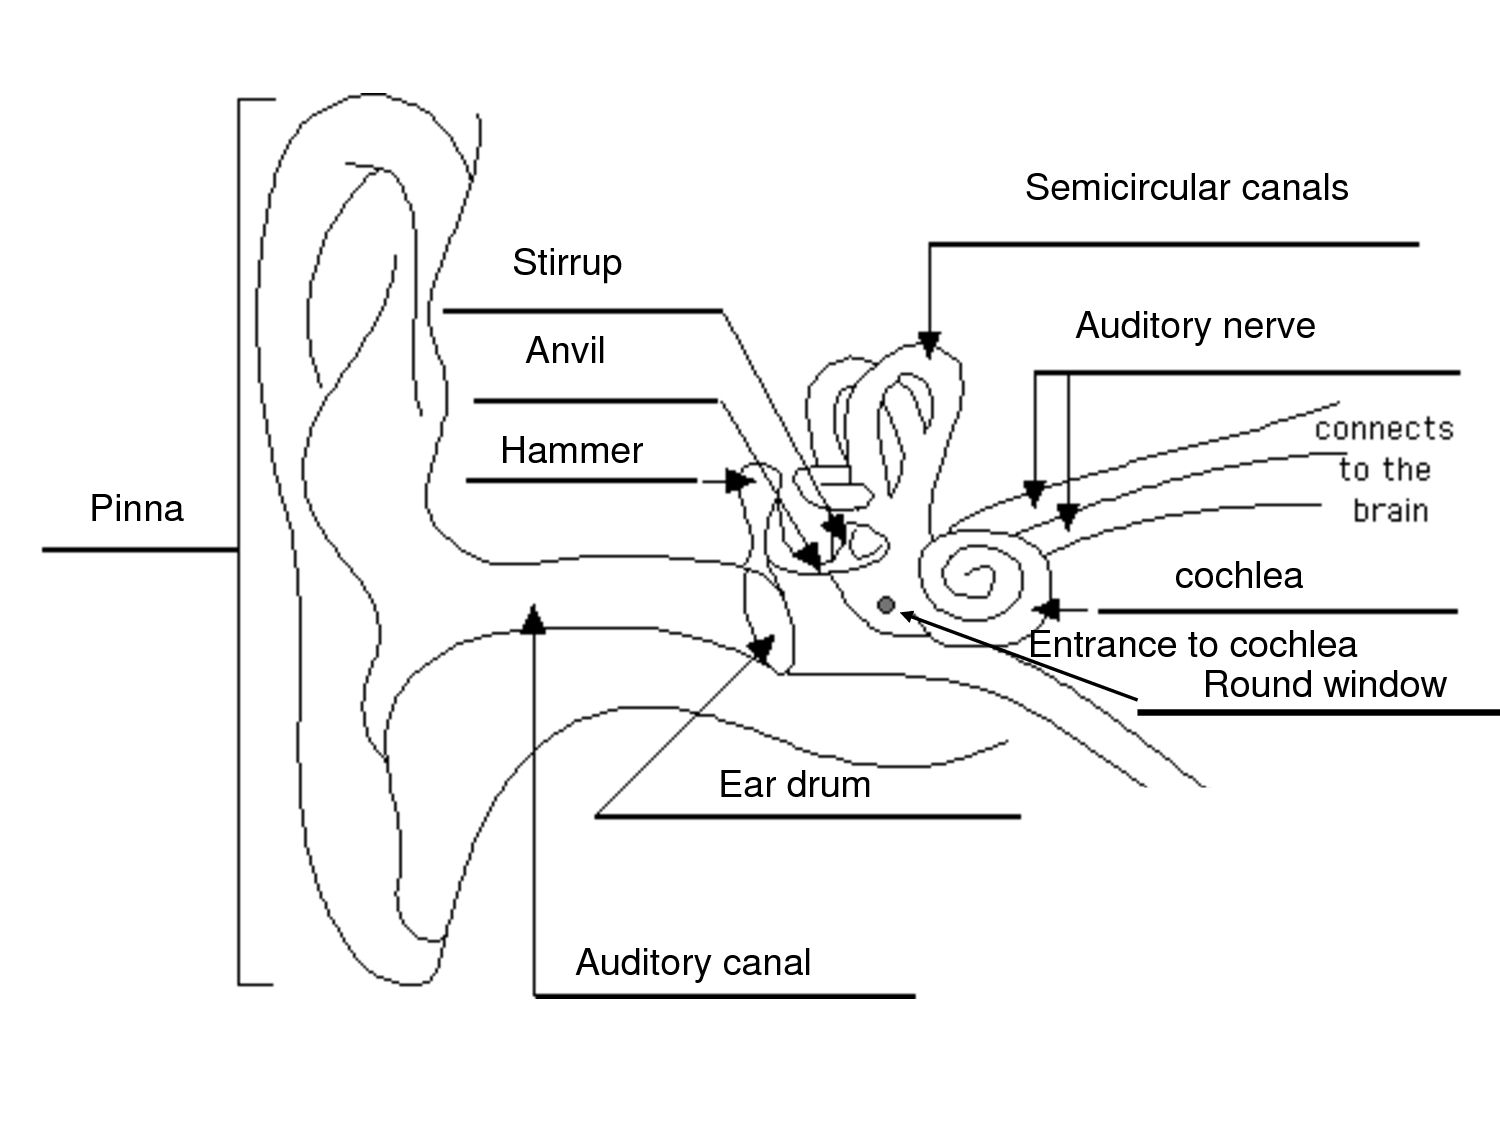 hight resolution of image result for ear structure without label sound topic hairs ear diagram labeled image result for